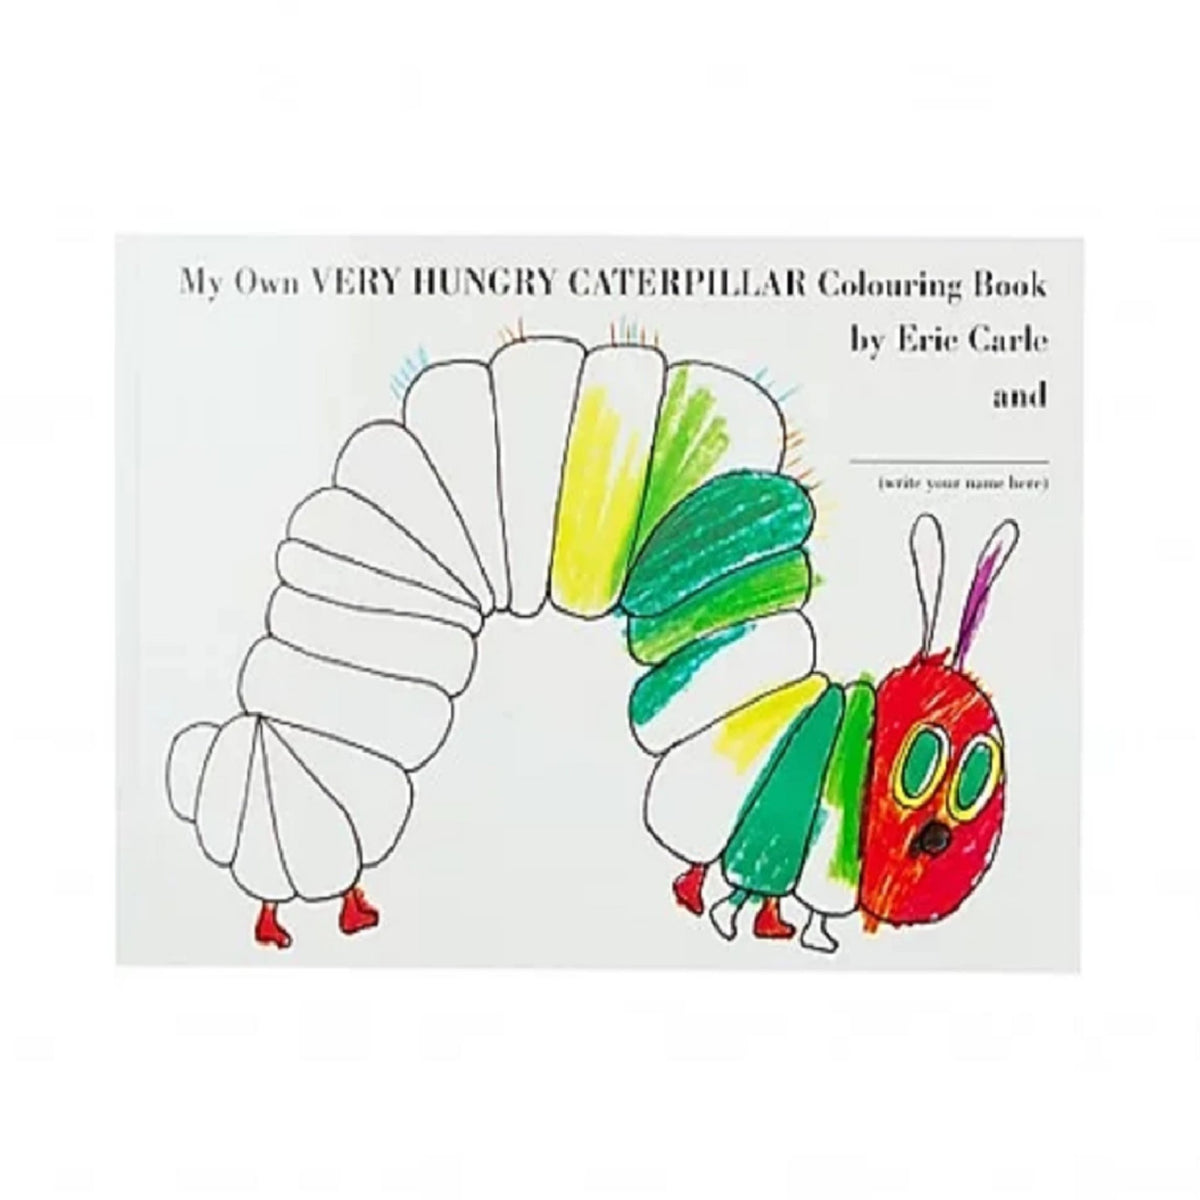 - My Own Very Hungry Caterpillar Colouring Book – Sydney Opera House